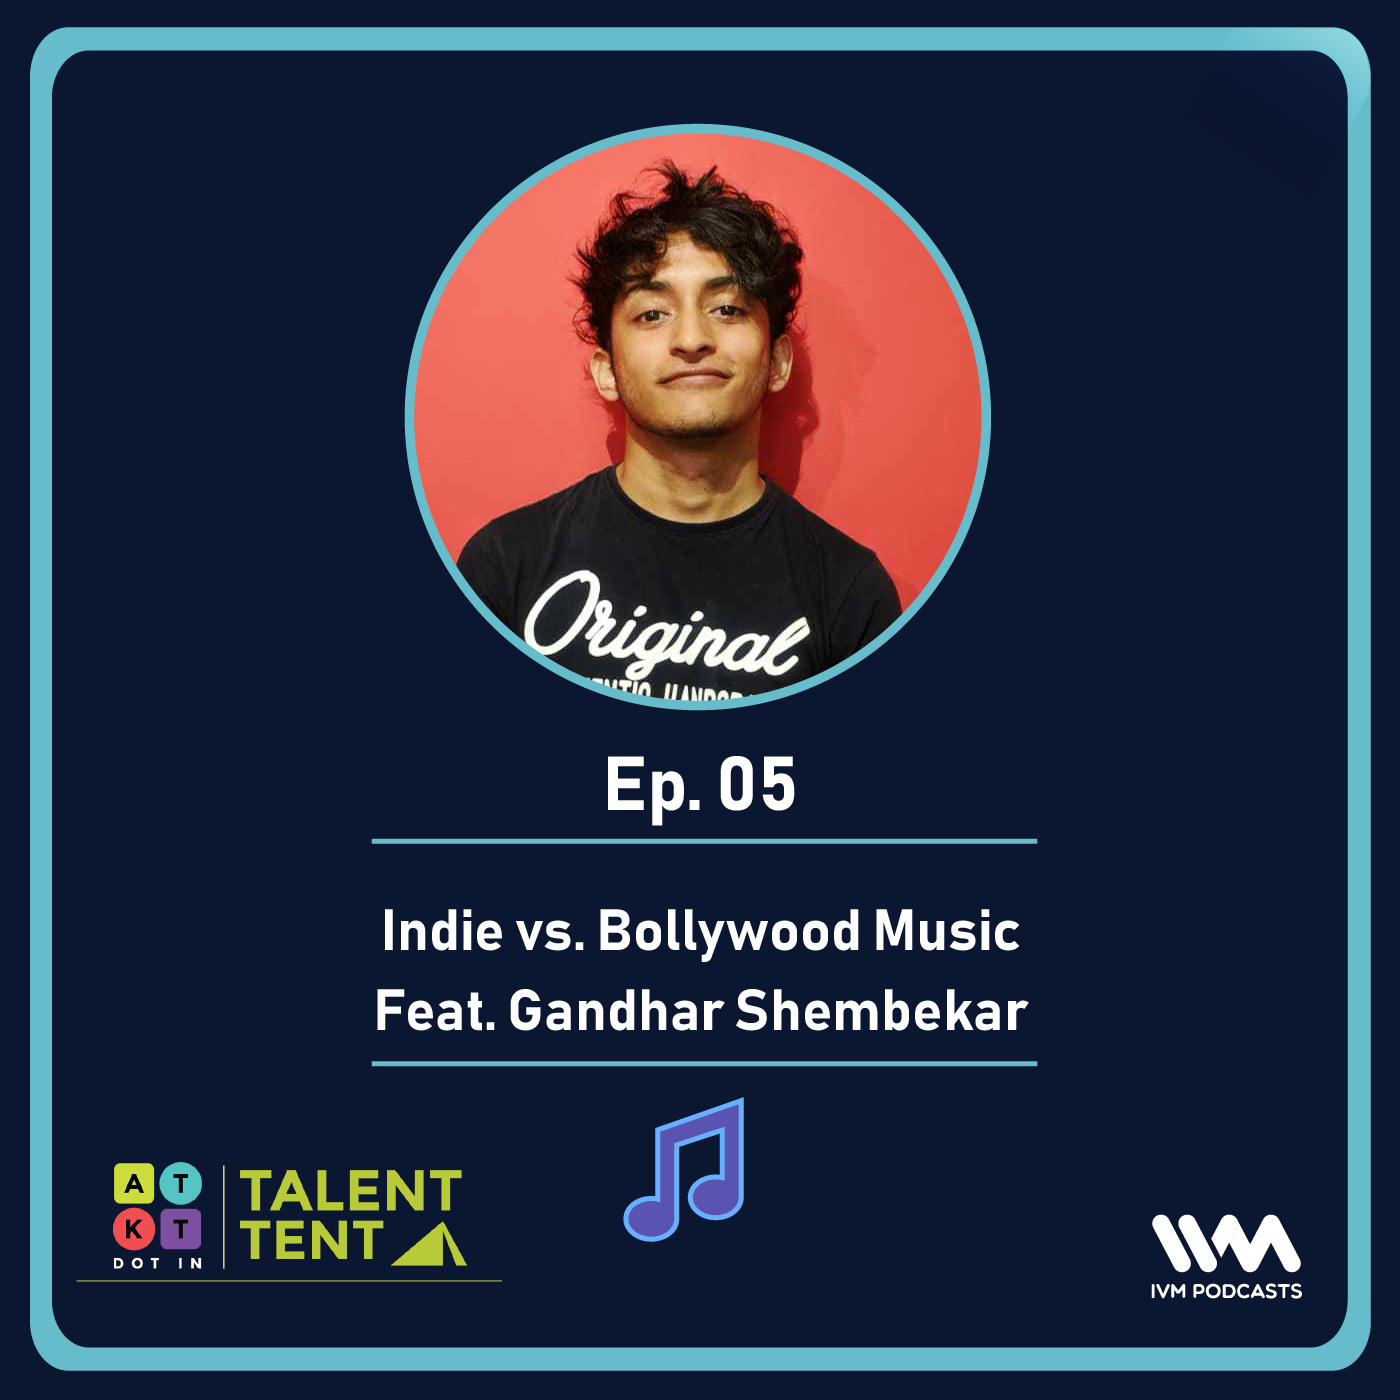 Ep. 05: Indie vs. Bollywood Music Feat.Gandhar Shembekar